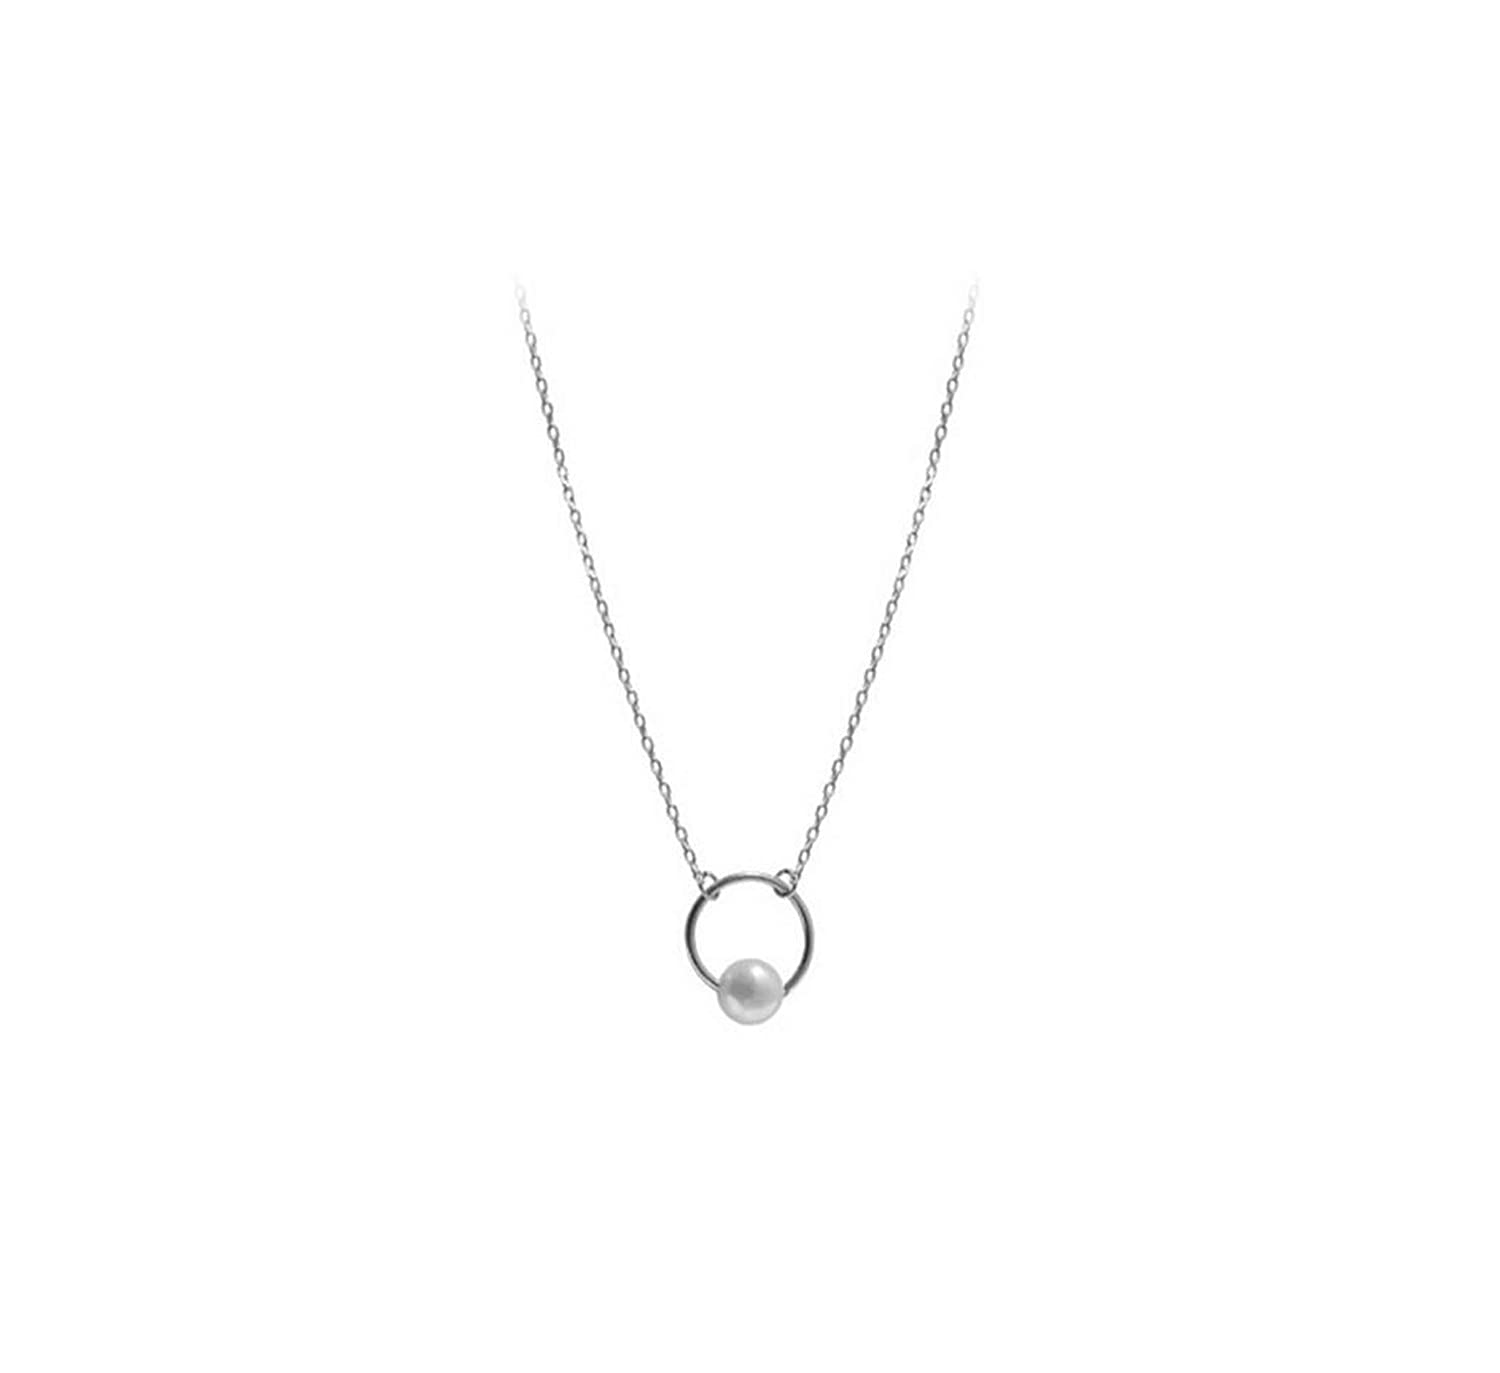 Chibi-Store 925 Sterling Silver Simple Circle Geometric Design Pearl Necklace GN571